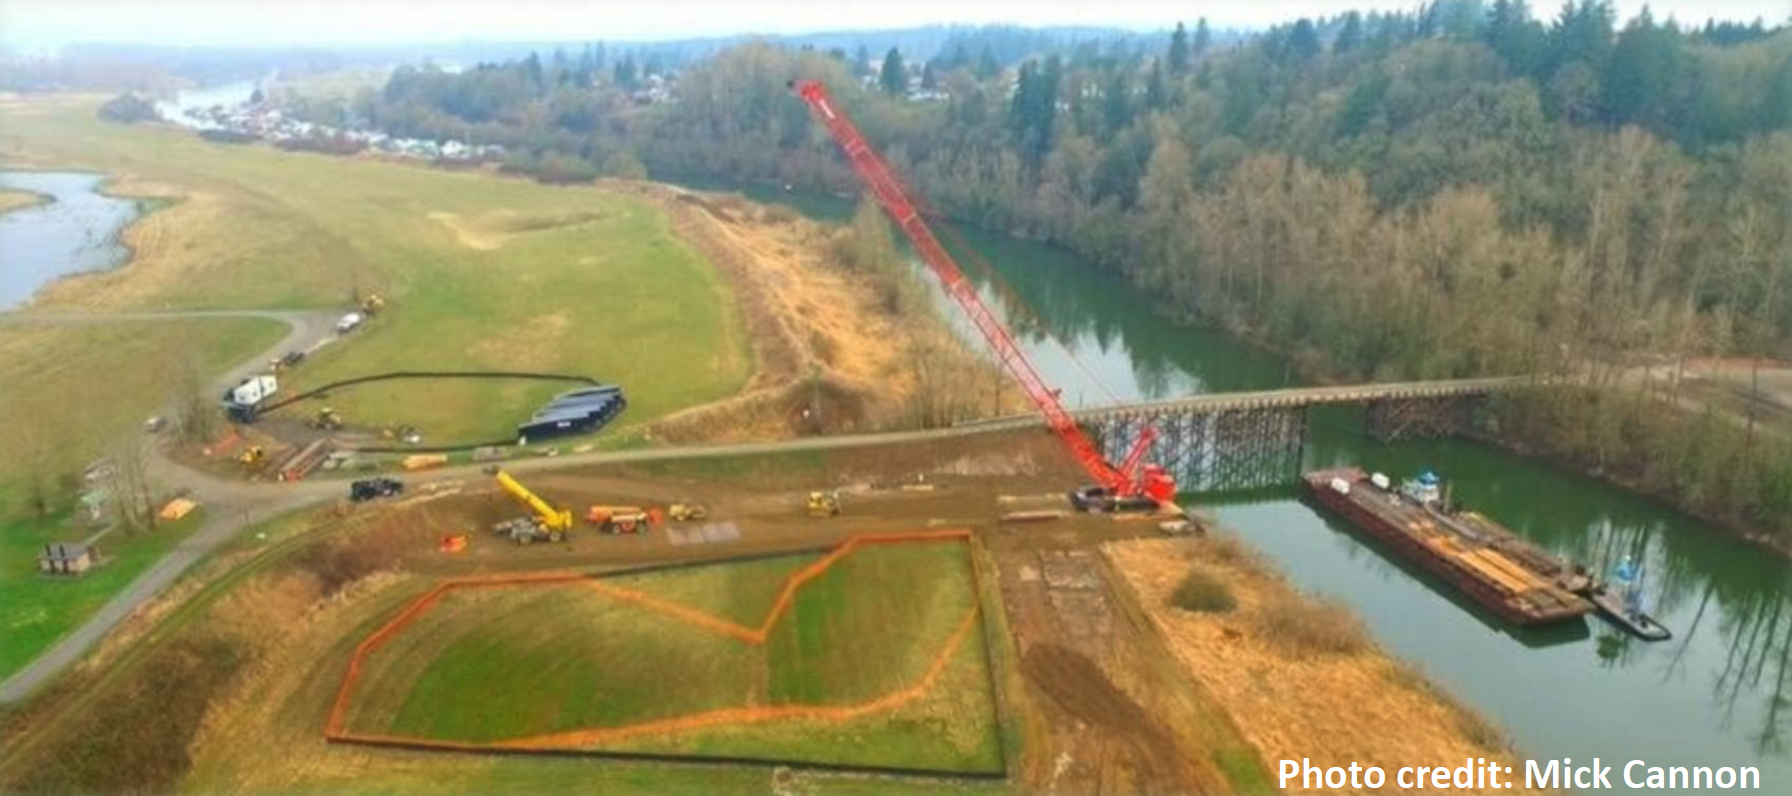 The big, 300-ton capacity crane is now operational. Its adorable yellow sibling can be seen to its left.